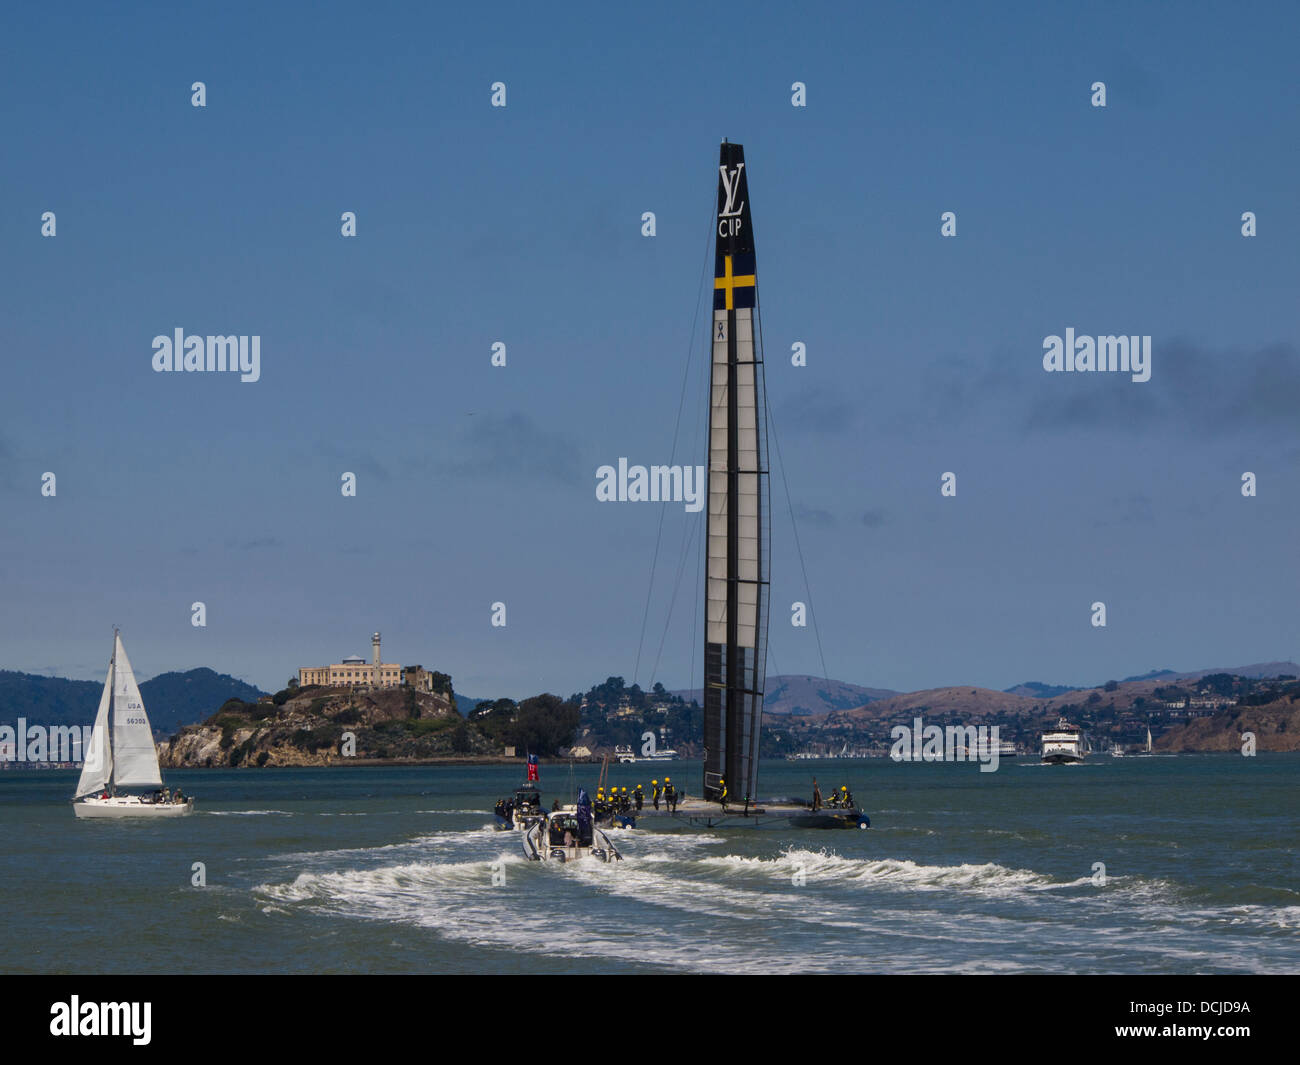 Artemis Racing sails for the start of the Louis Vuitton Cup which they ended up losing four straight races to Luna - Stock Image